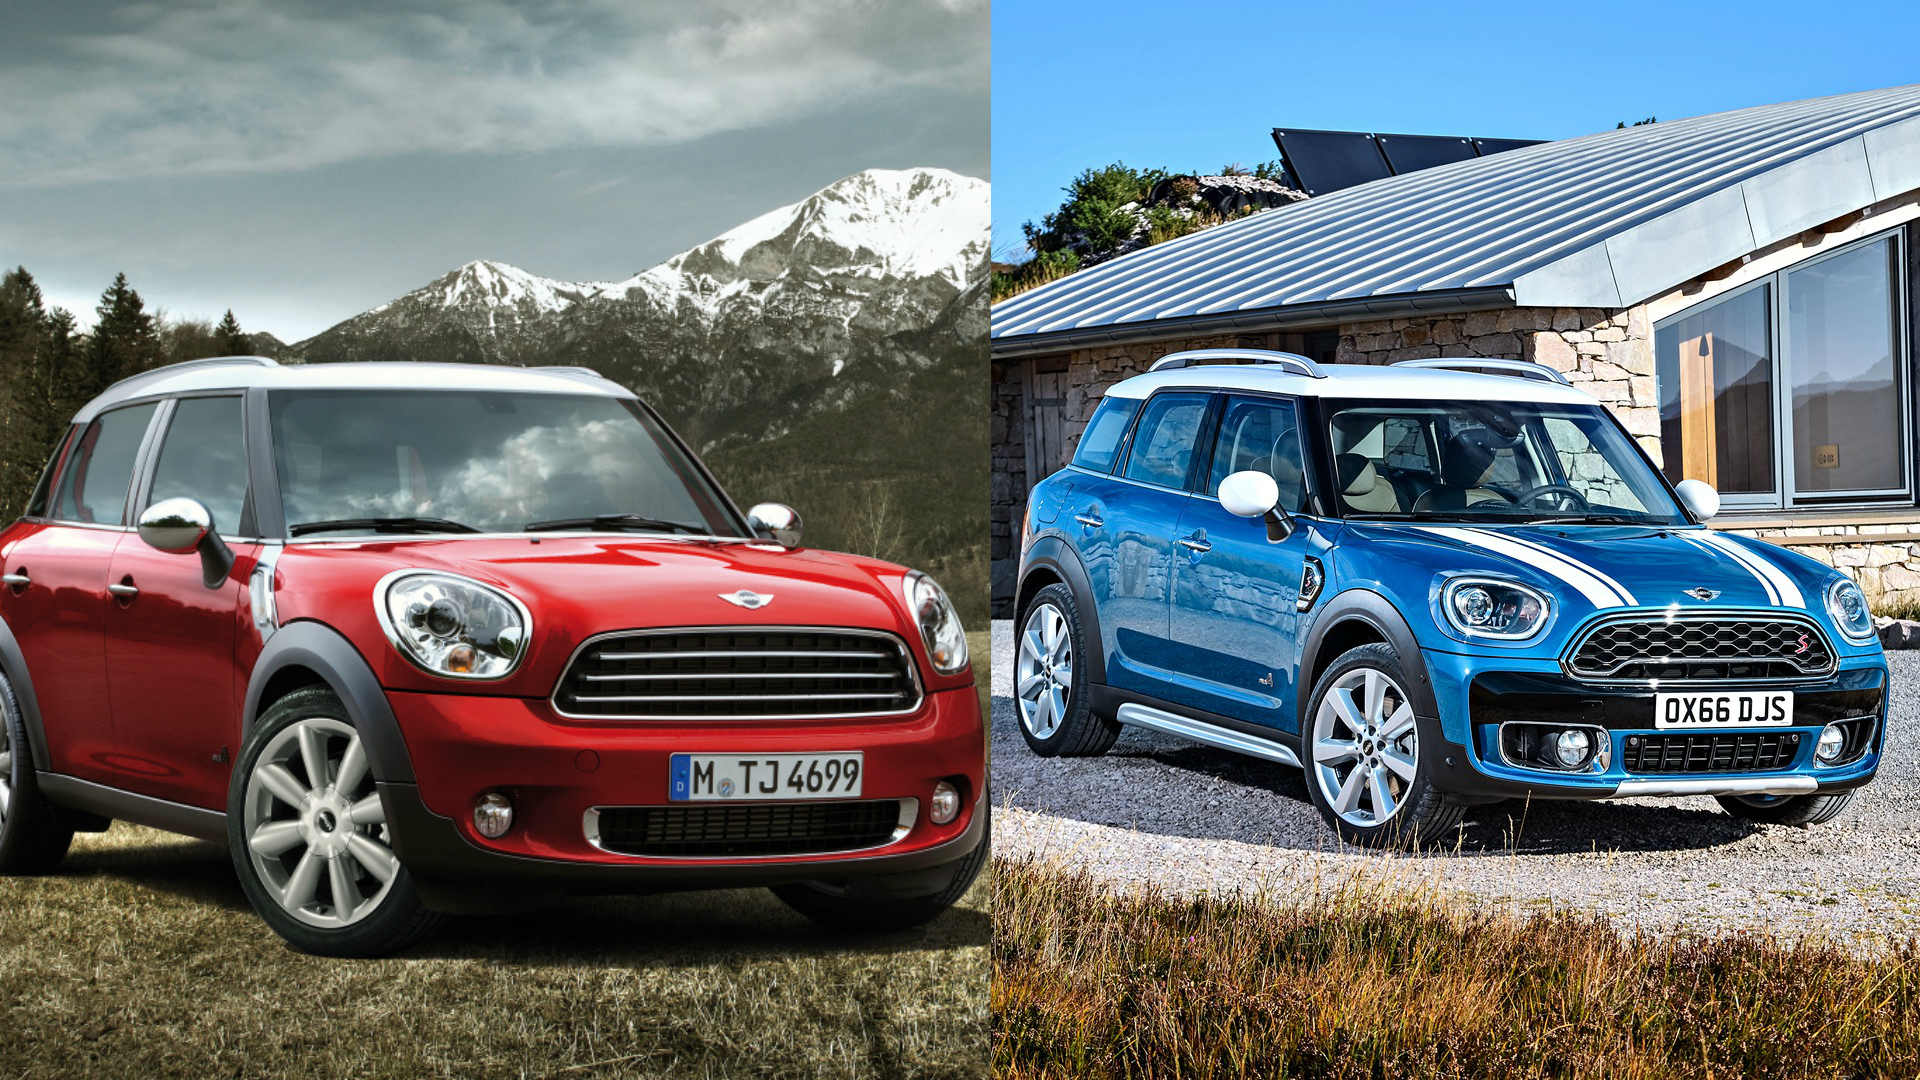 2017 mini countryman vs 2010 model main differences between the two generations autoevolution. Black Bedroom Furniture Sets. Home Design Ideas